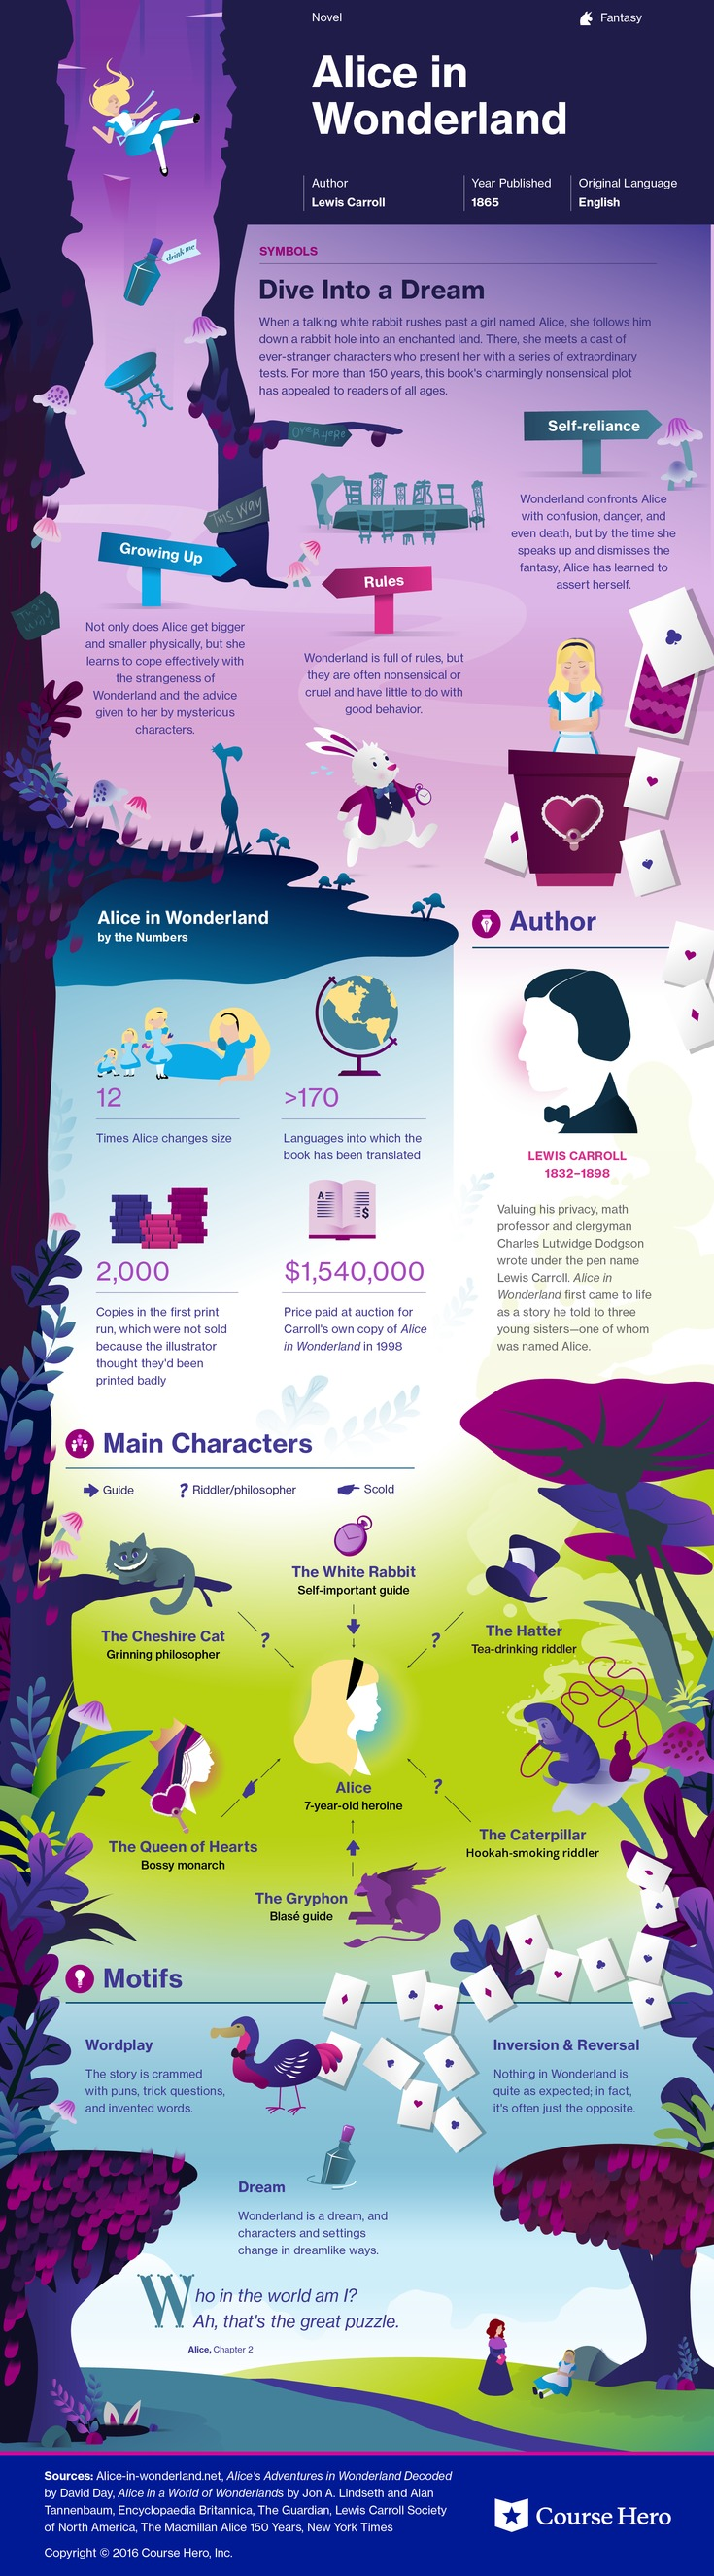 This CourseHero infographic on Alice in Wonderland is